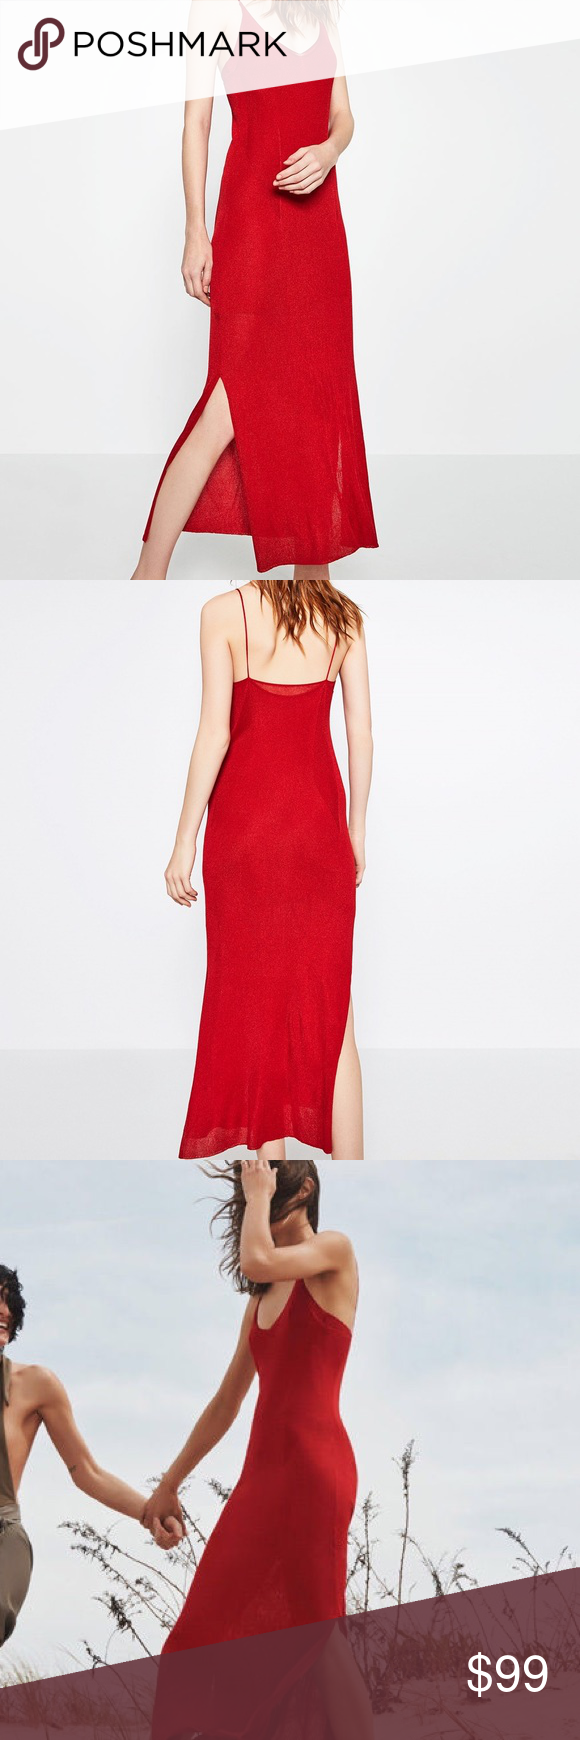 Stunning zara limited edition red dress brand new with tags double